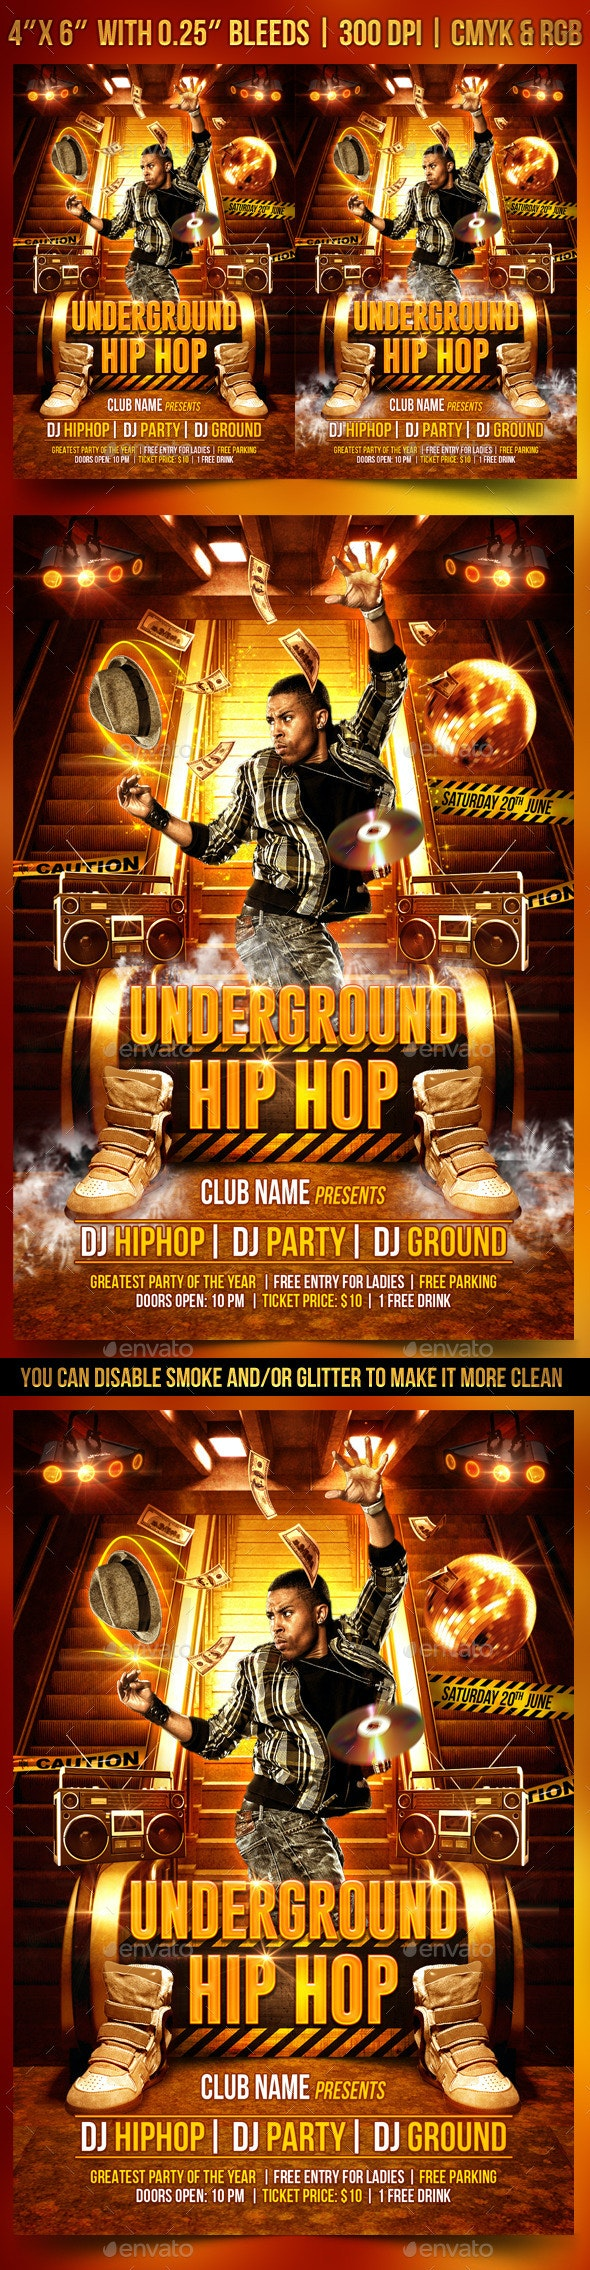 Underground Hip Hop Flyer Template - Clubs & Parties Events